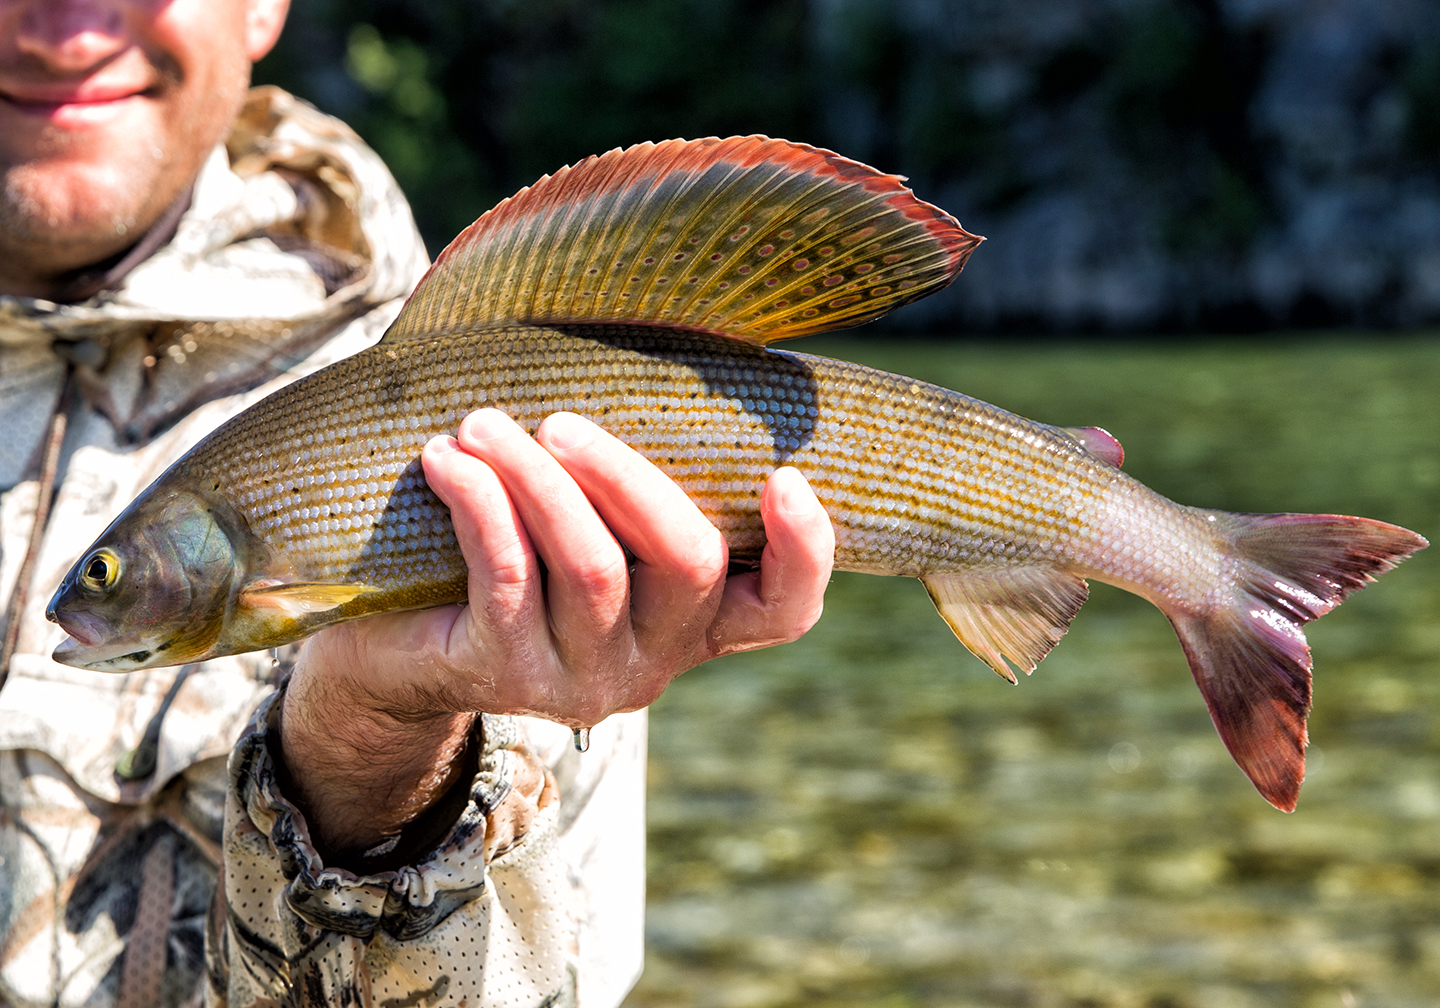 An angler holding a Grayling fish above a river.